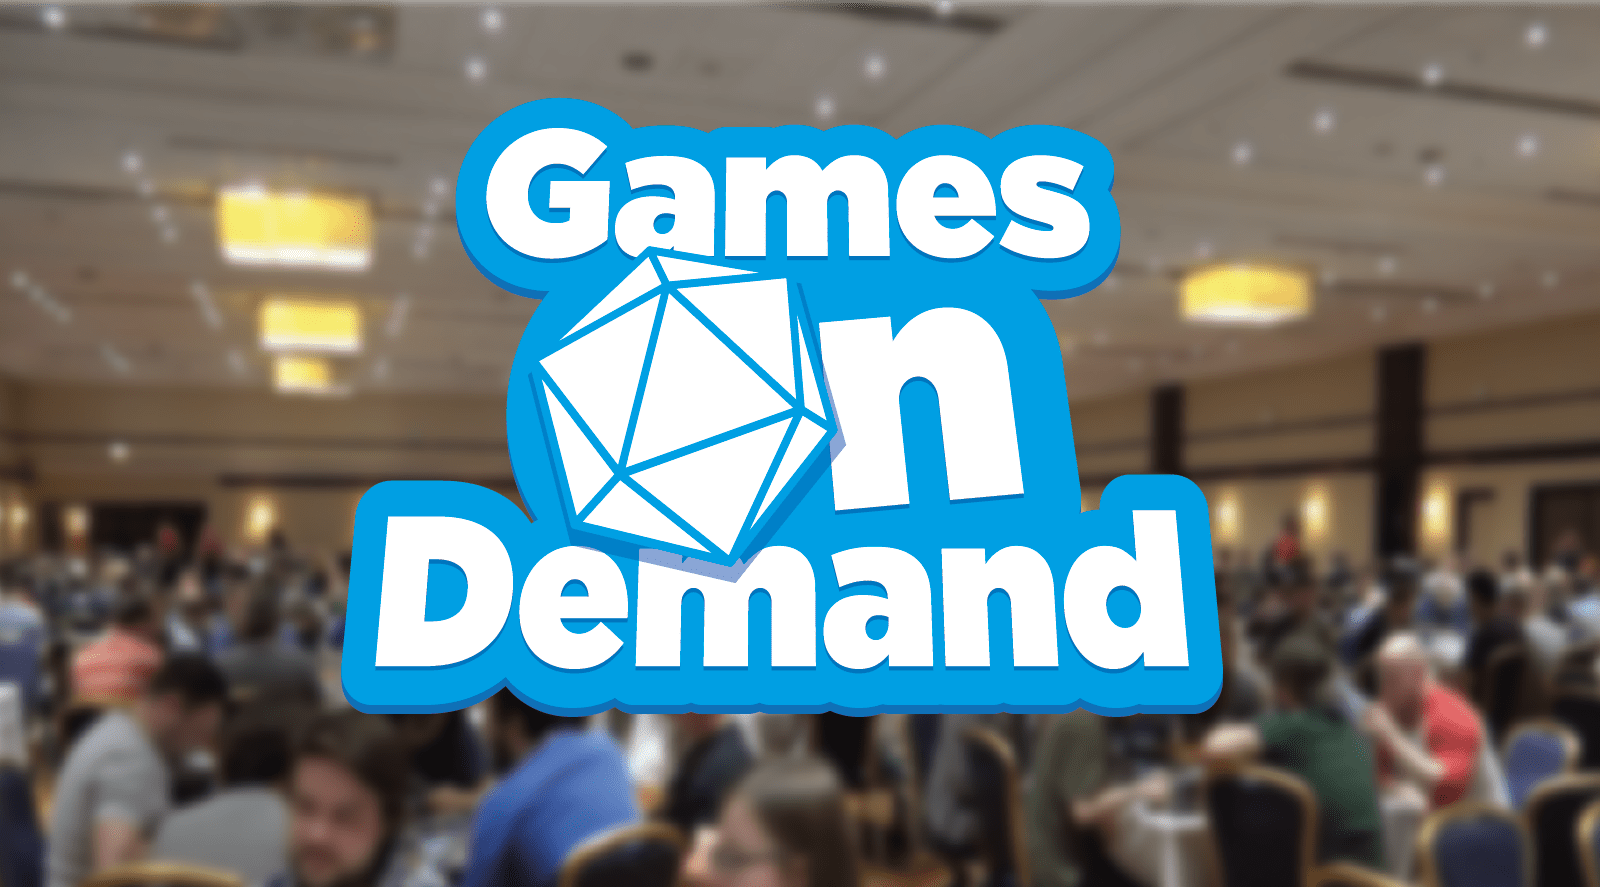 Games on Demand @ UKGE